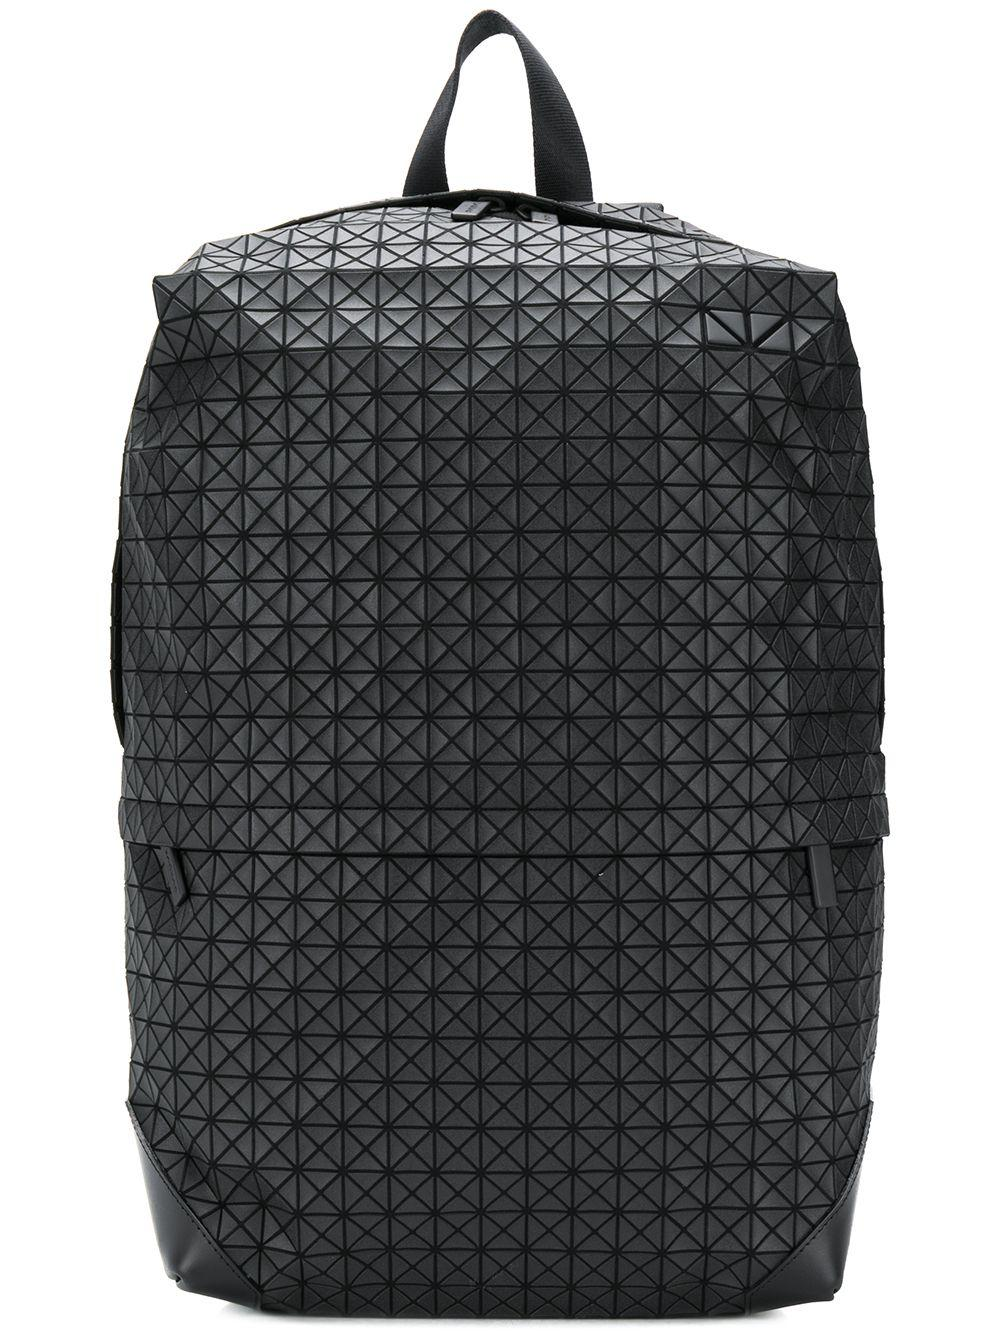 bd599f64f90f Lyst - Bao Bao Issey Miyake Backpack With Prismatic Design in Black ...